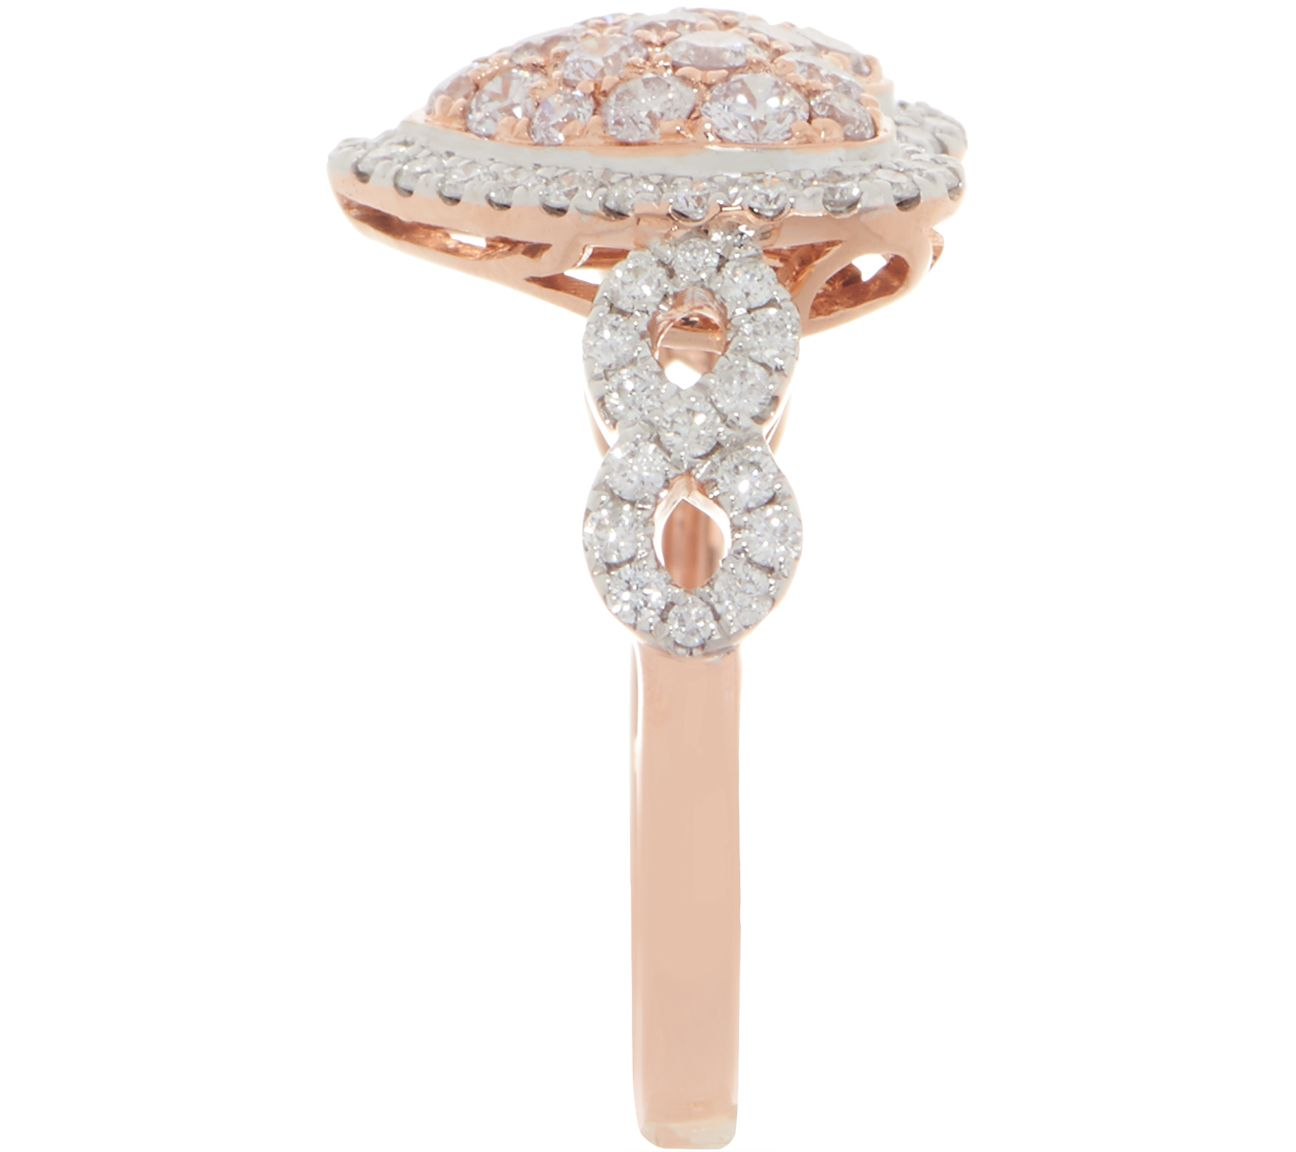 Affinity Diamond Natural Pink Heart Ring, 1 00cttw, 14K — QVC com